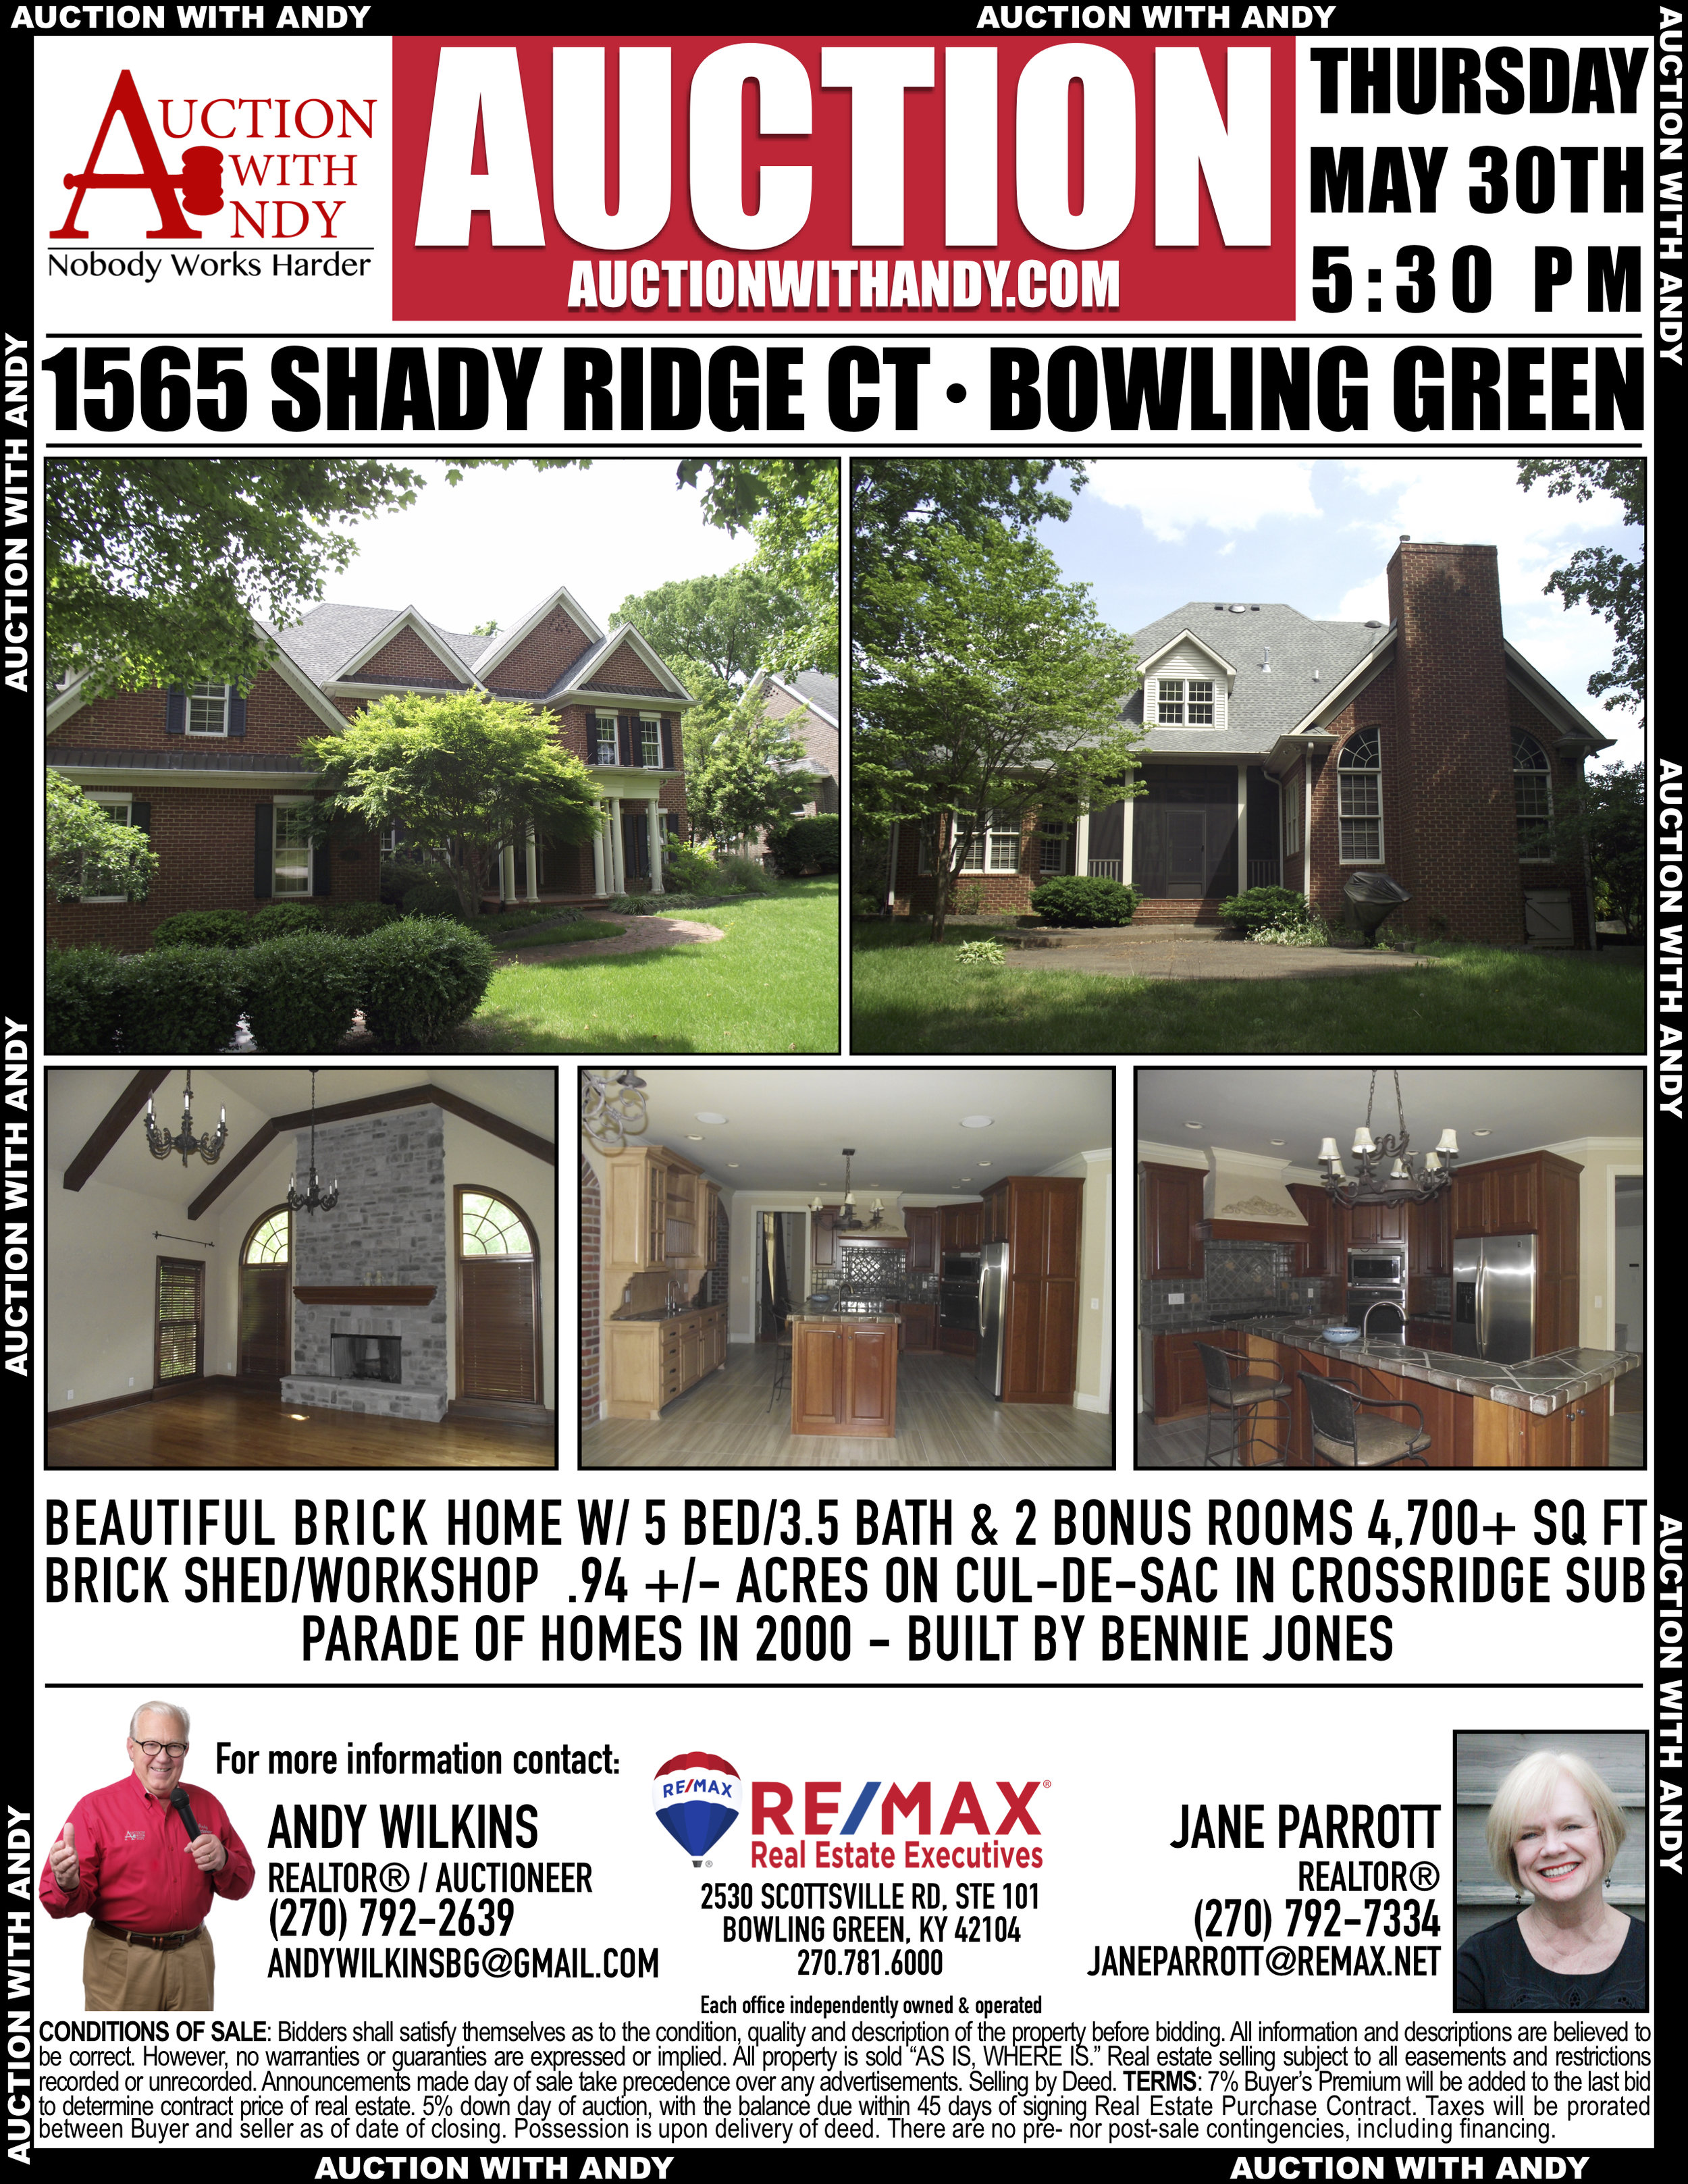 1565 Shady Ridge Ct Flyer.jpg